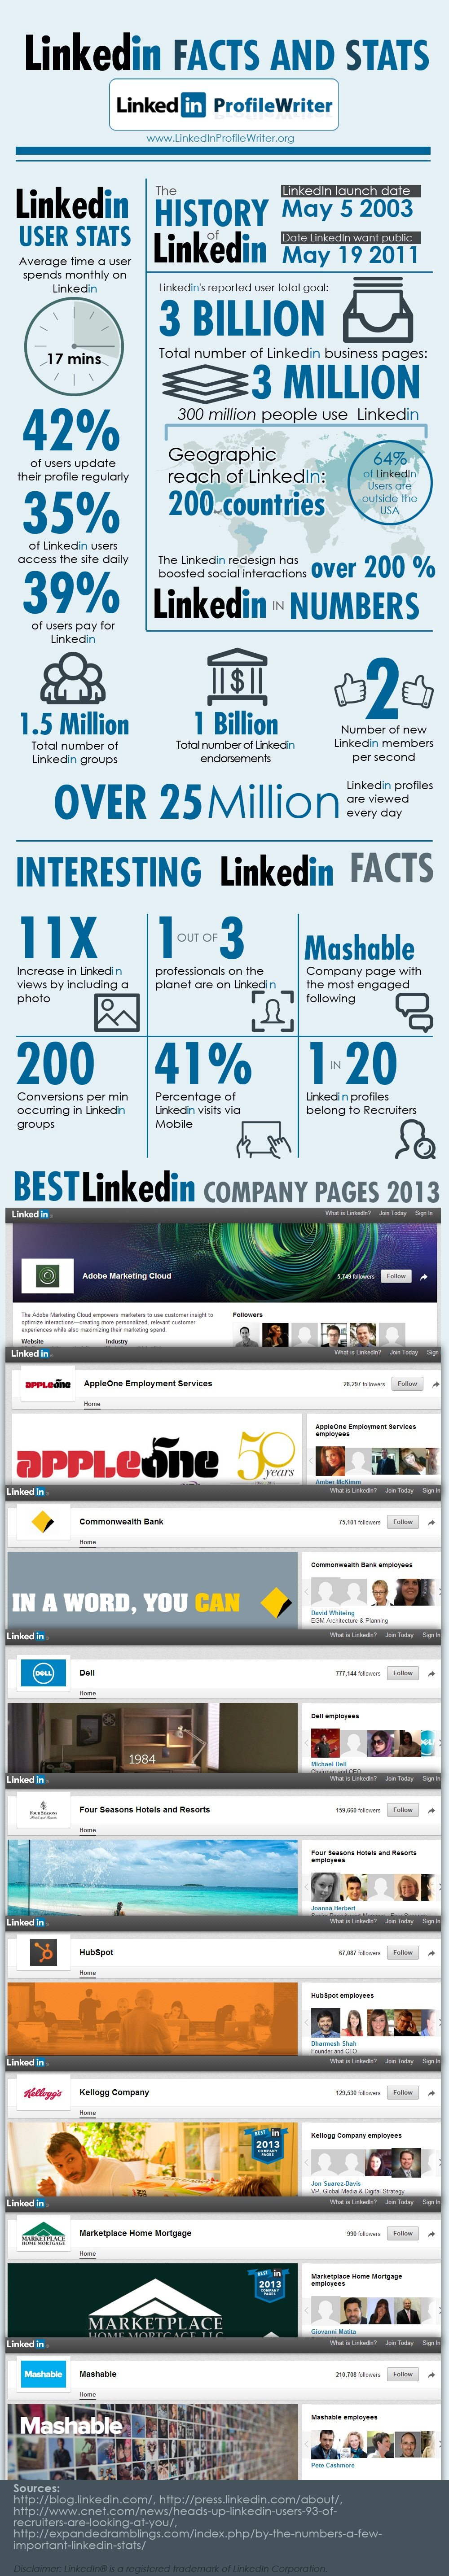 wersm linkedin infographic stats facts - LinkedIn is more than just a job search and CV hosting tool